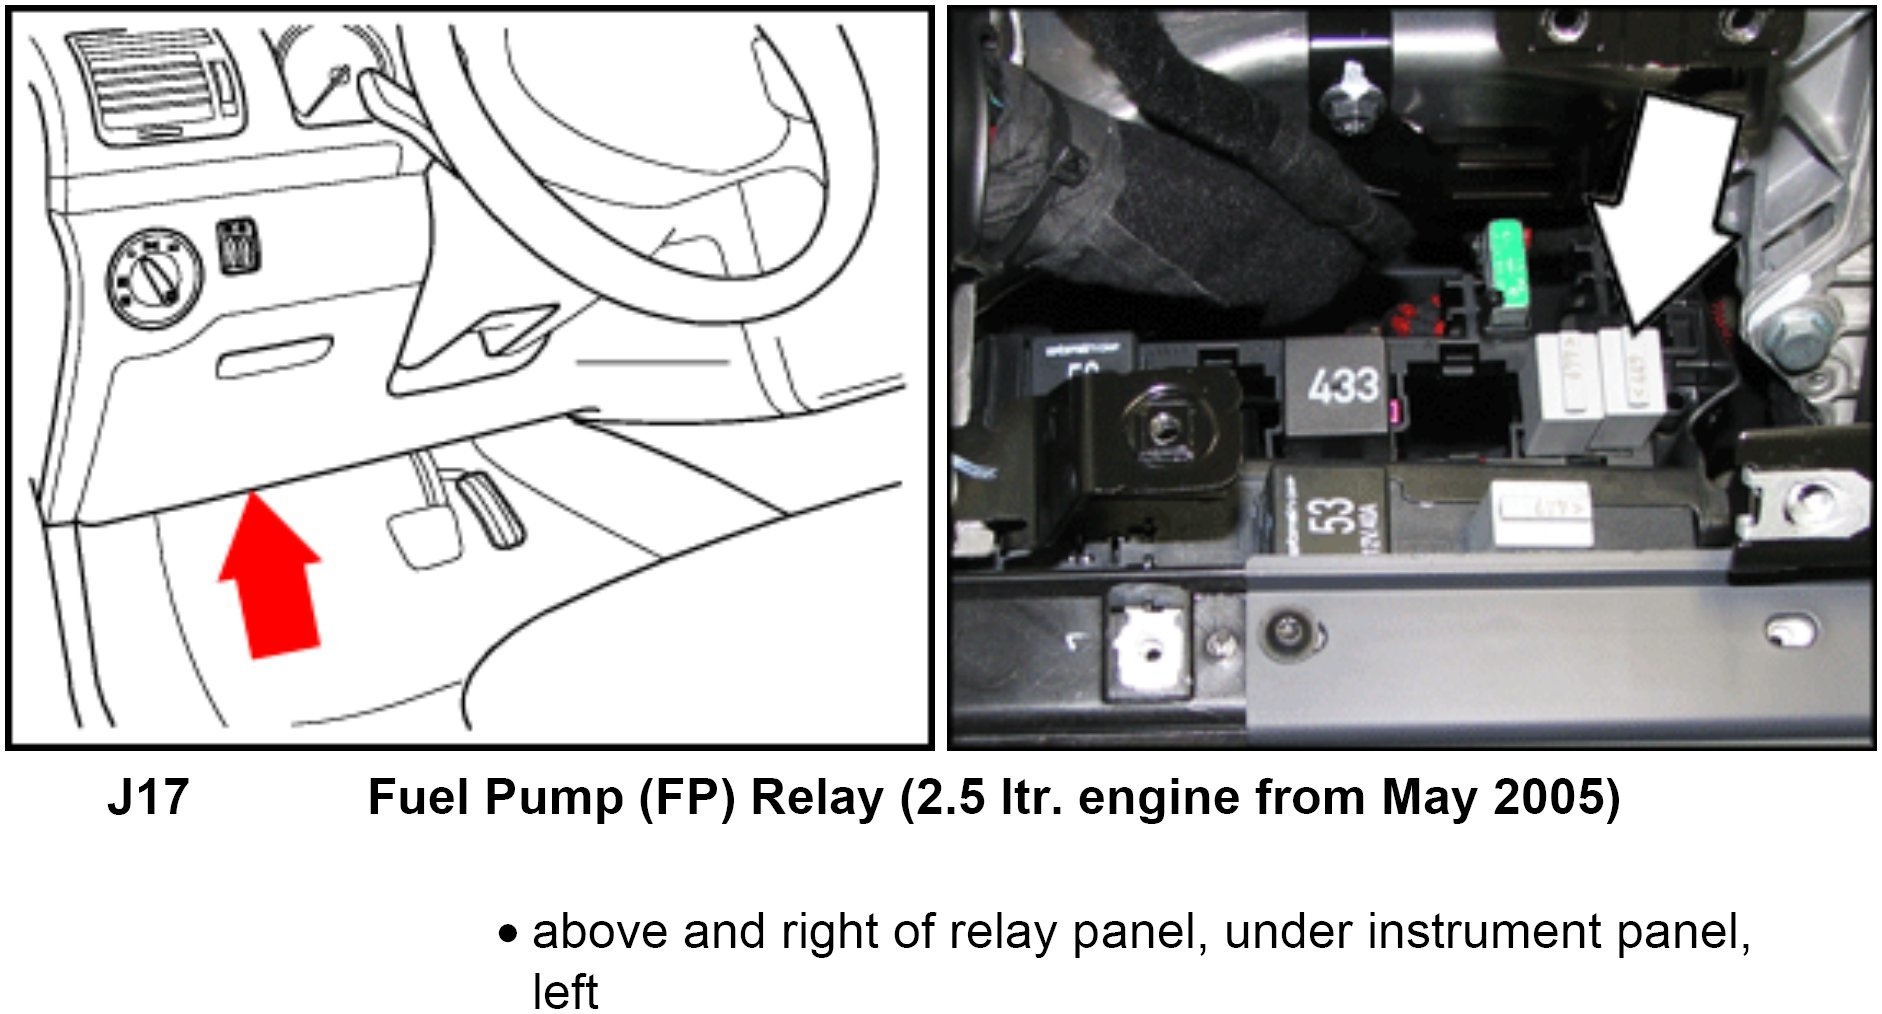 where is the fuel pump relay located in the 2010 vw jetta